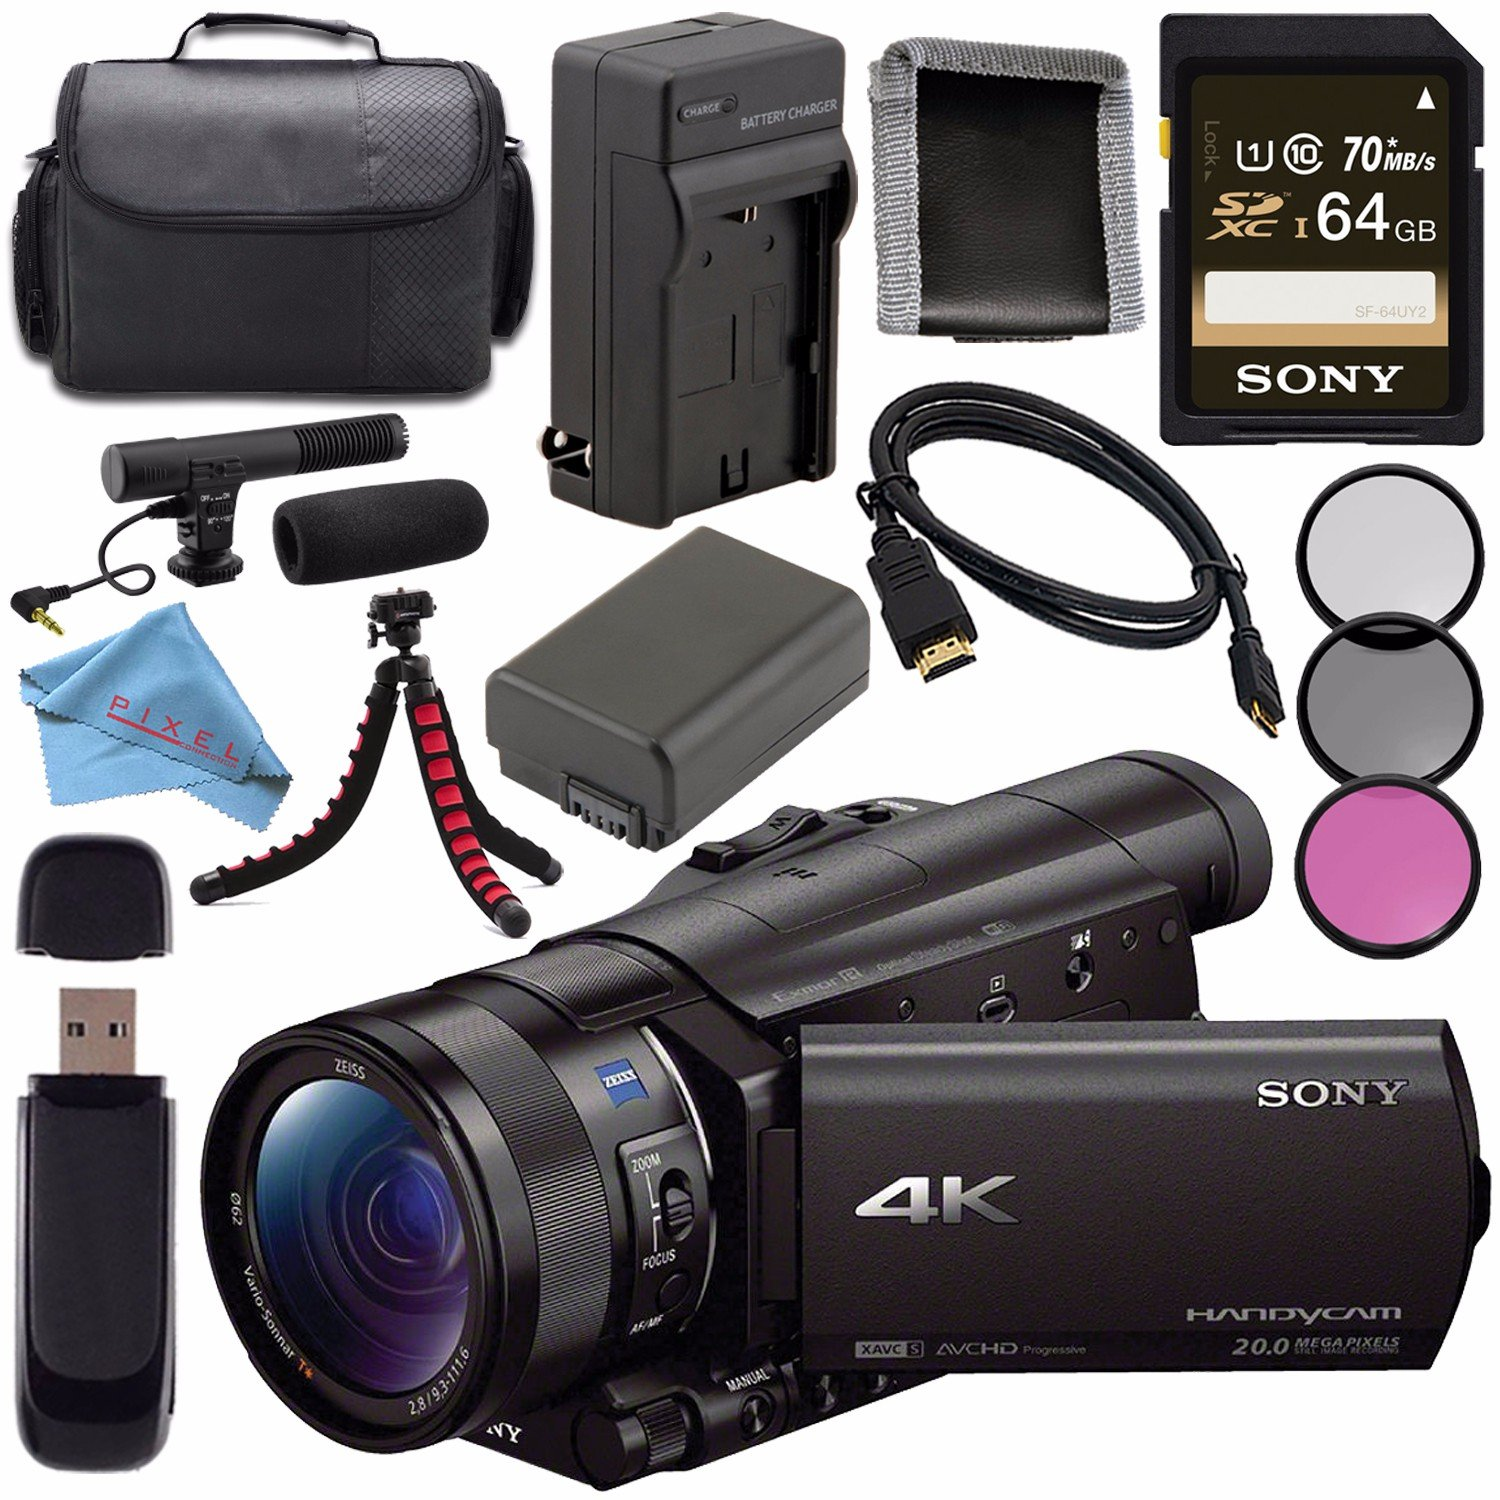 DRIVERS: SONY FDR-AX100B CAMCORDER